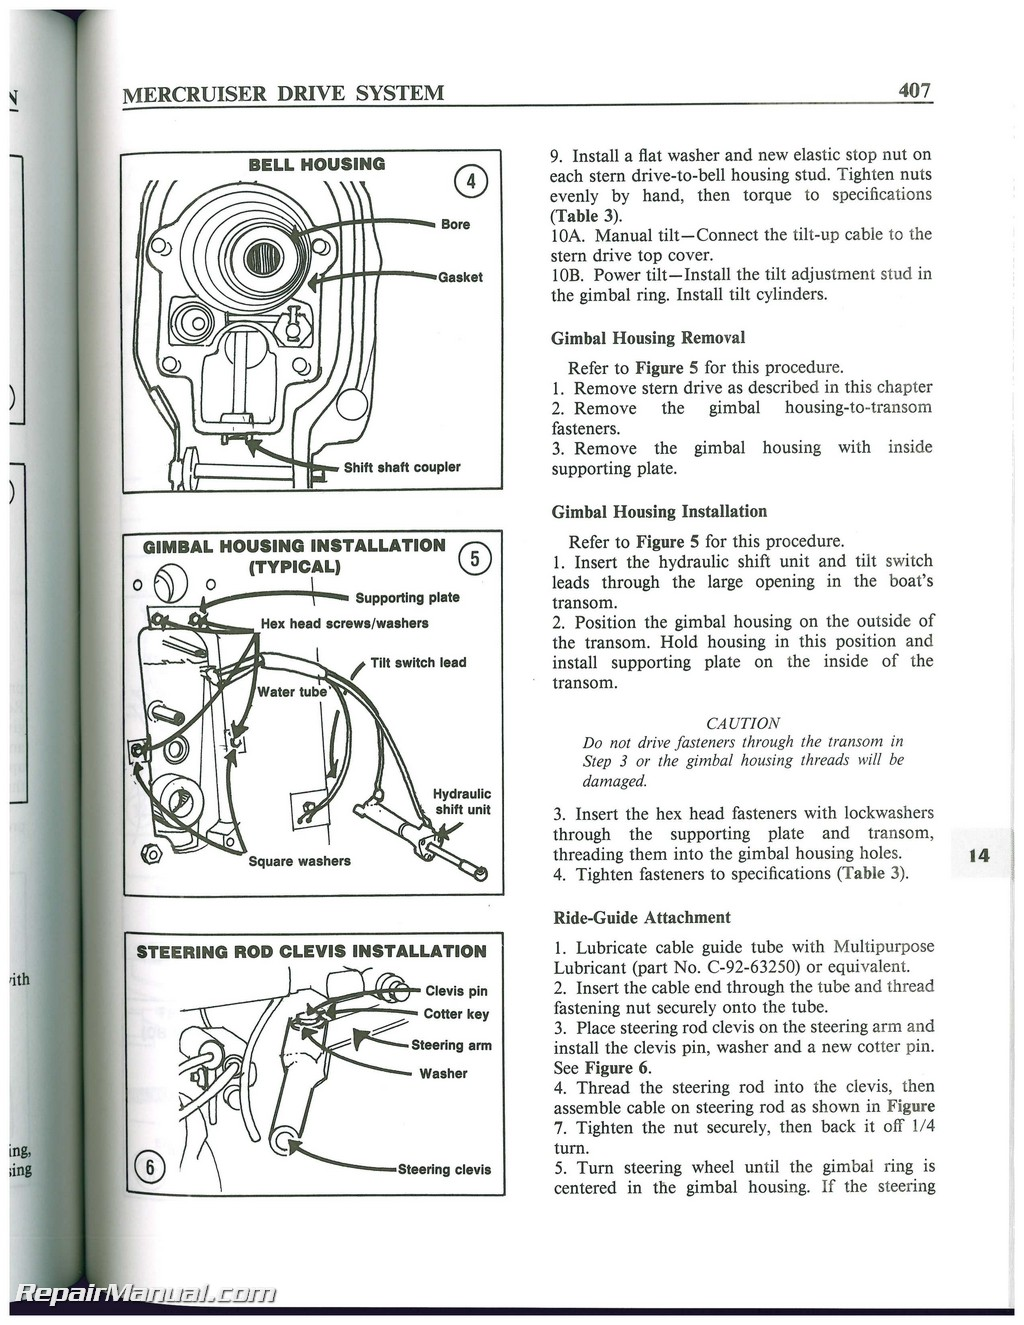 mercruiser stern drive boat engine shop manual 1964 1987 rh repairmanual com Mercruiser Manual 250 4.5 3.0L Mercruiser Manual